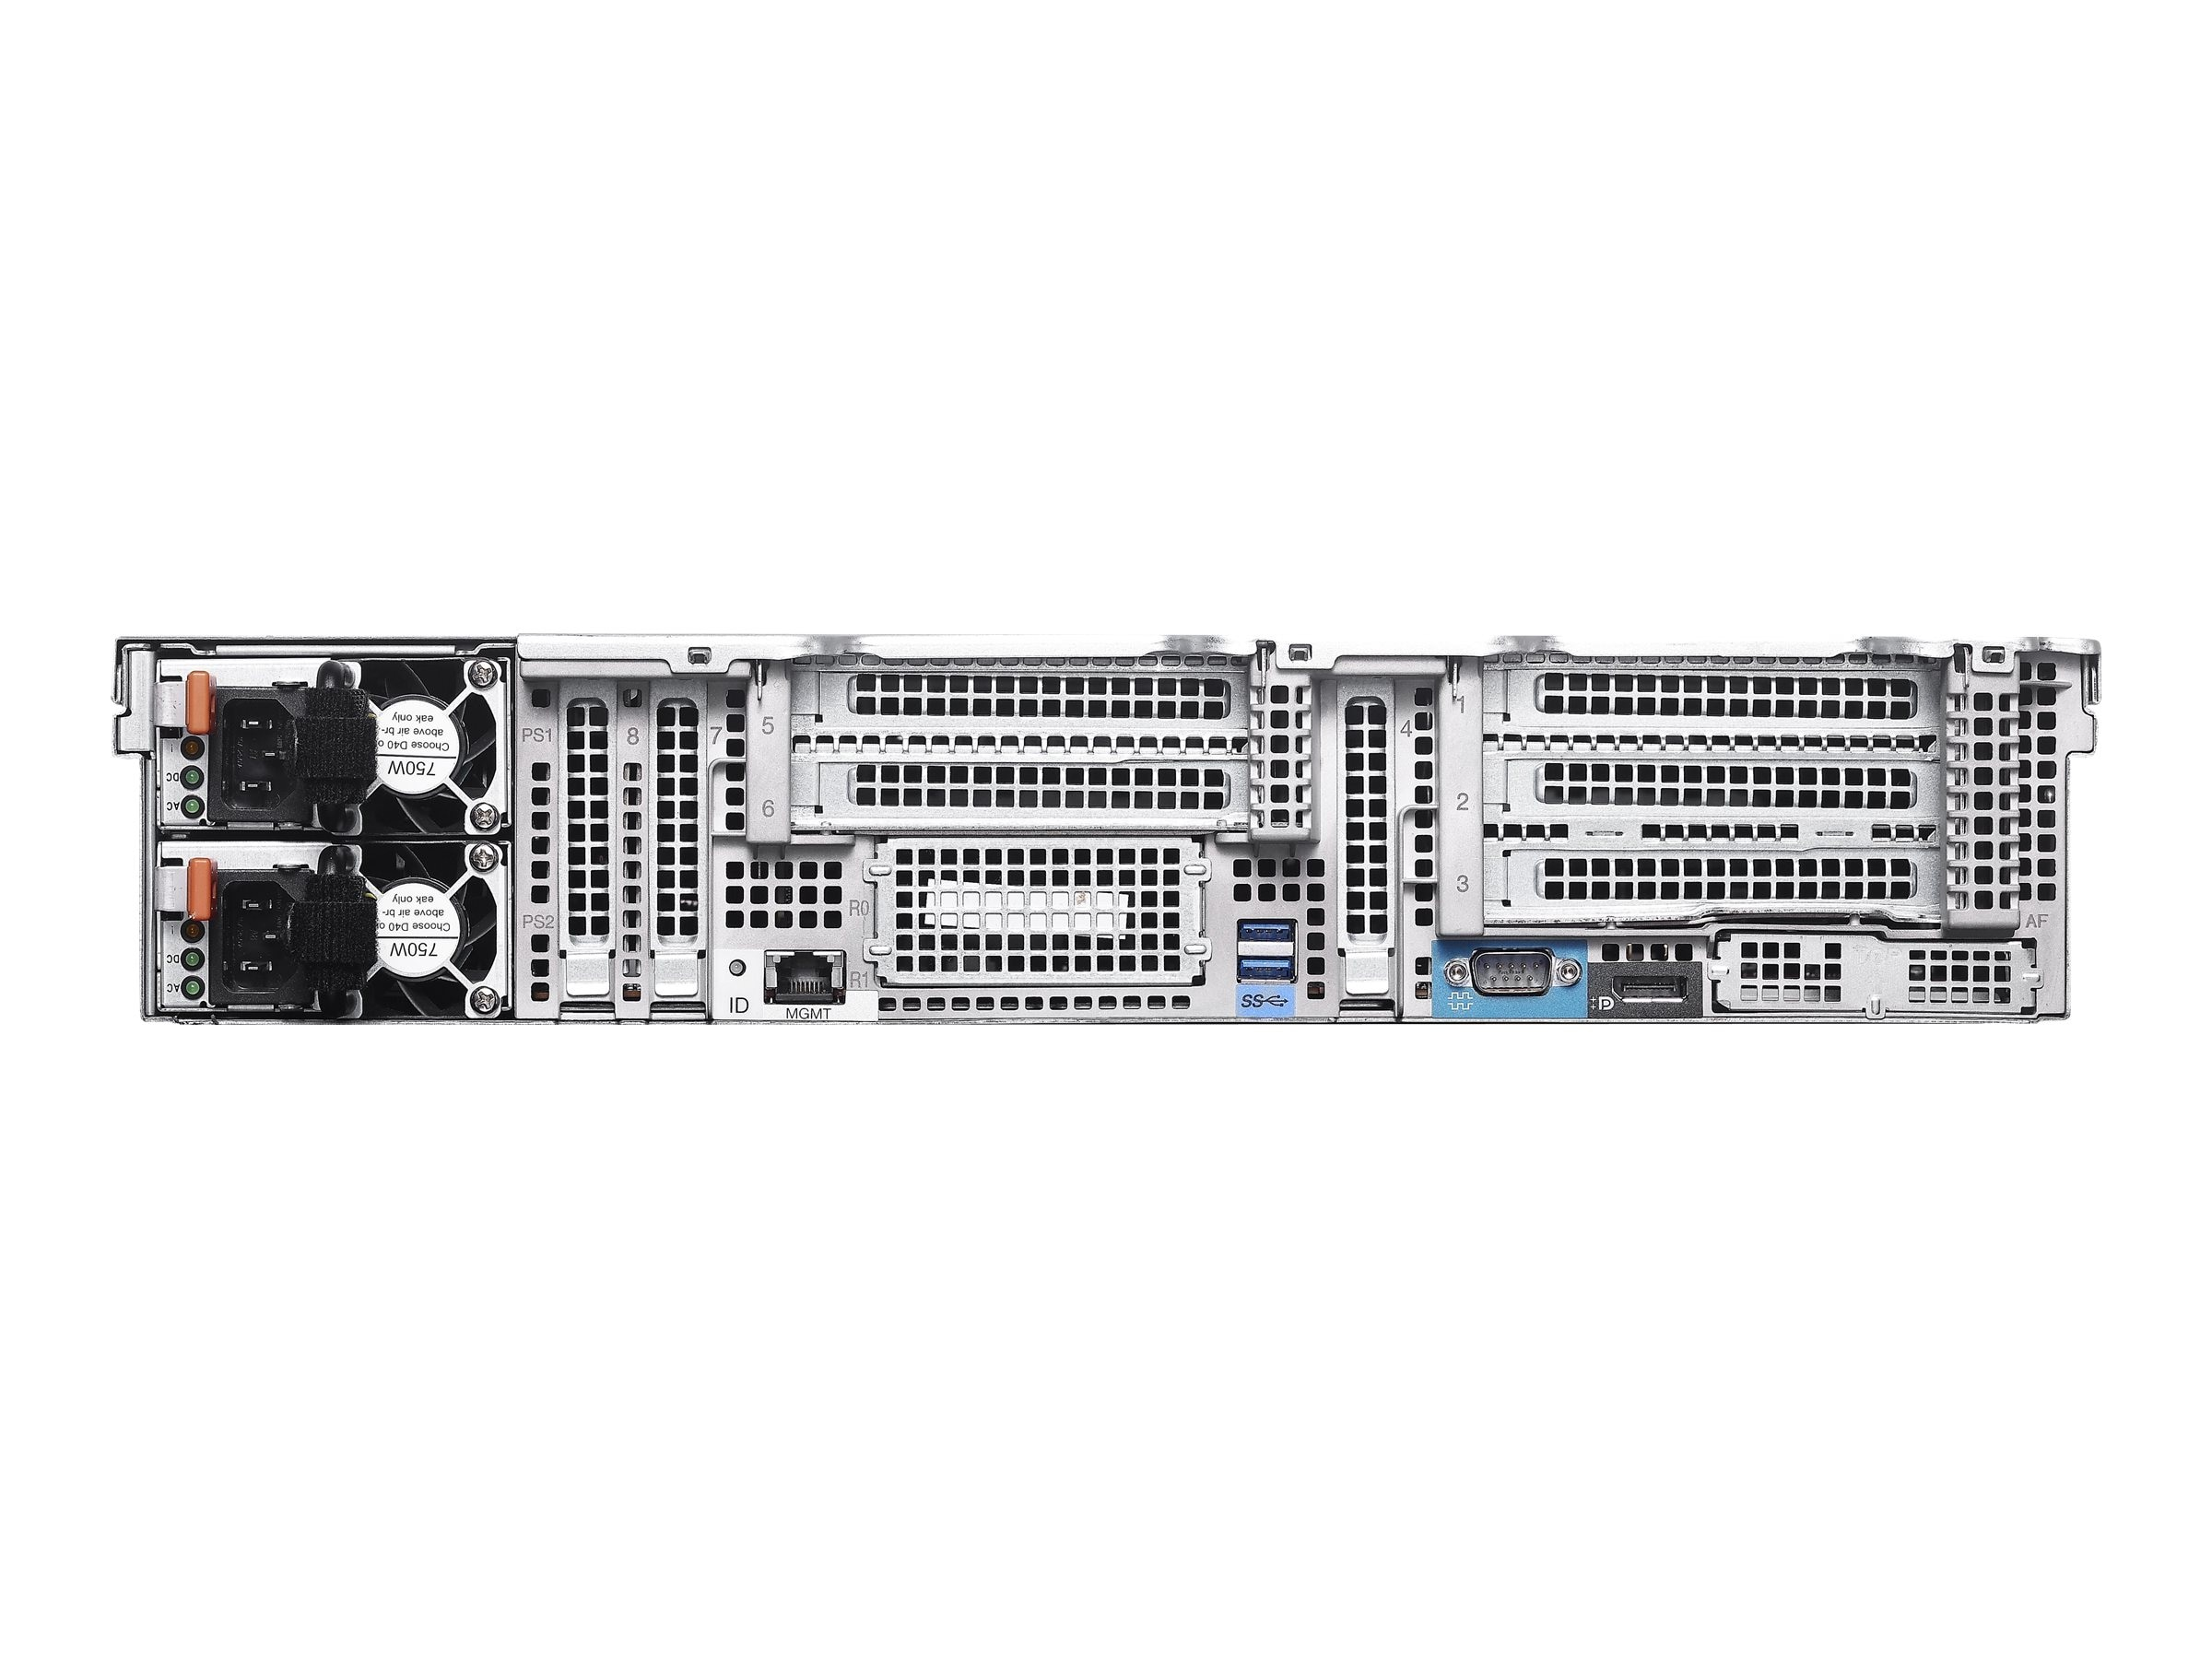 Lenovo ThinkServer RD650 Intel 2.4GHz Xeon, 70D10007UX